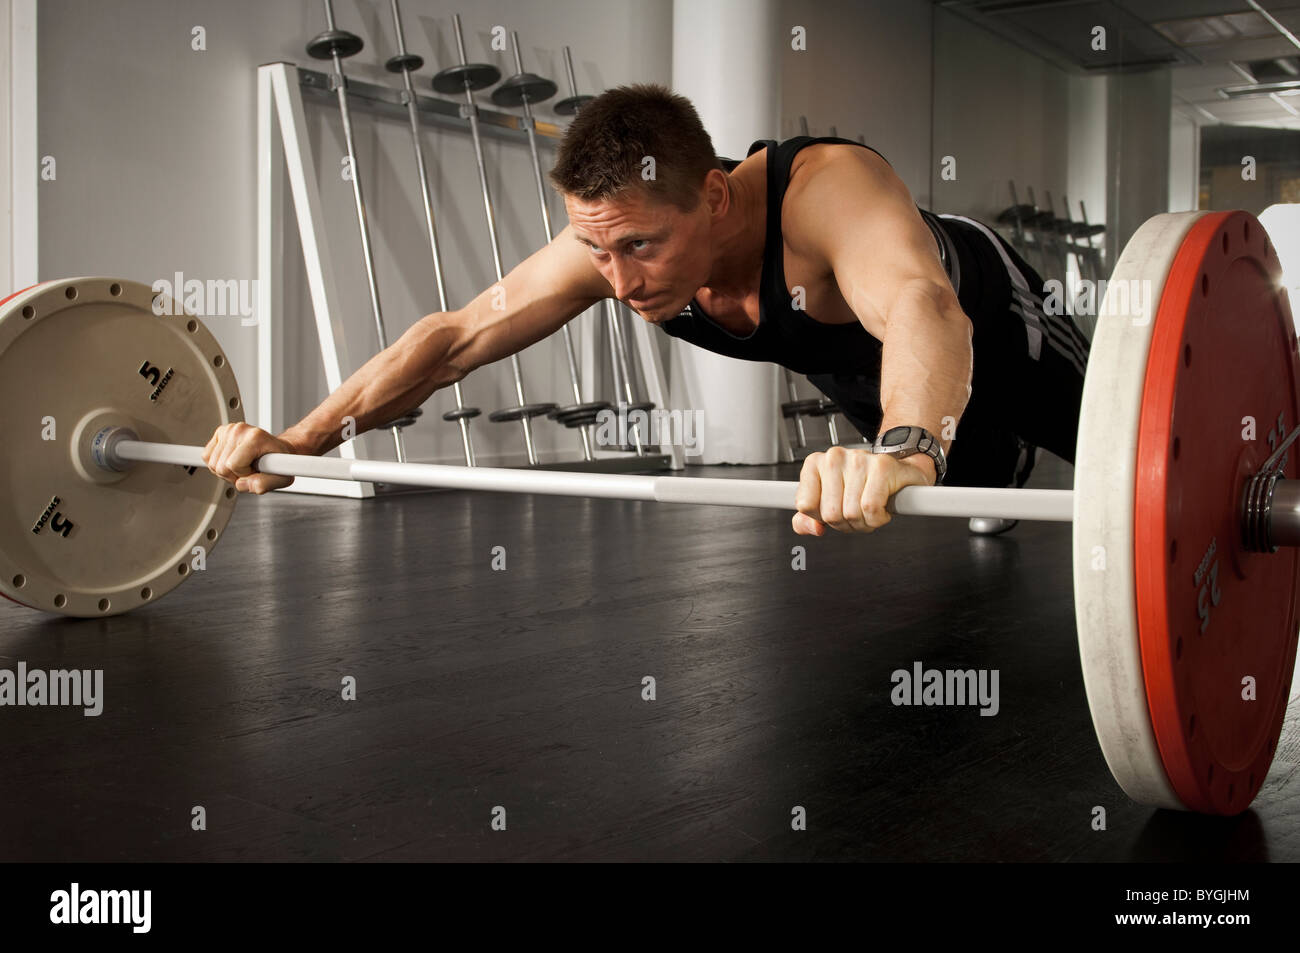 Male athlete holding barbell in gym - Stock Image